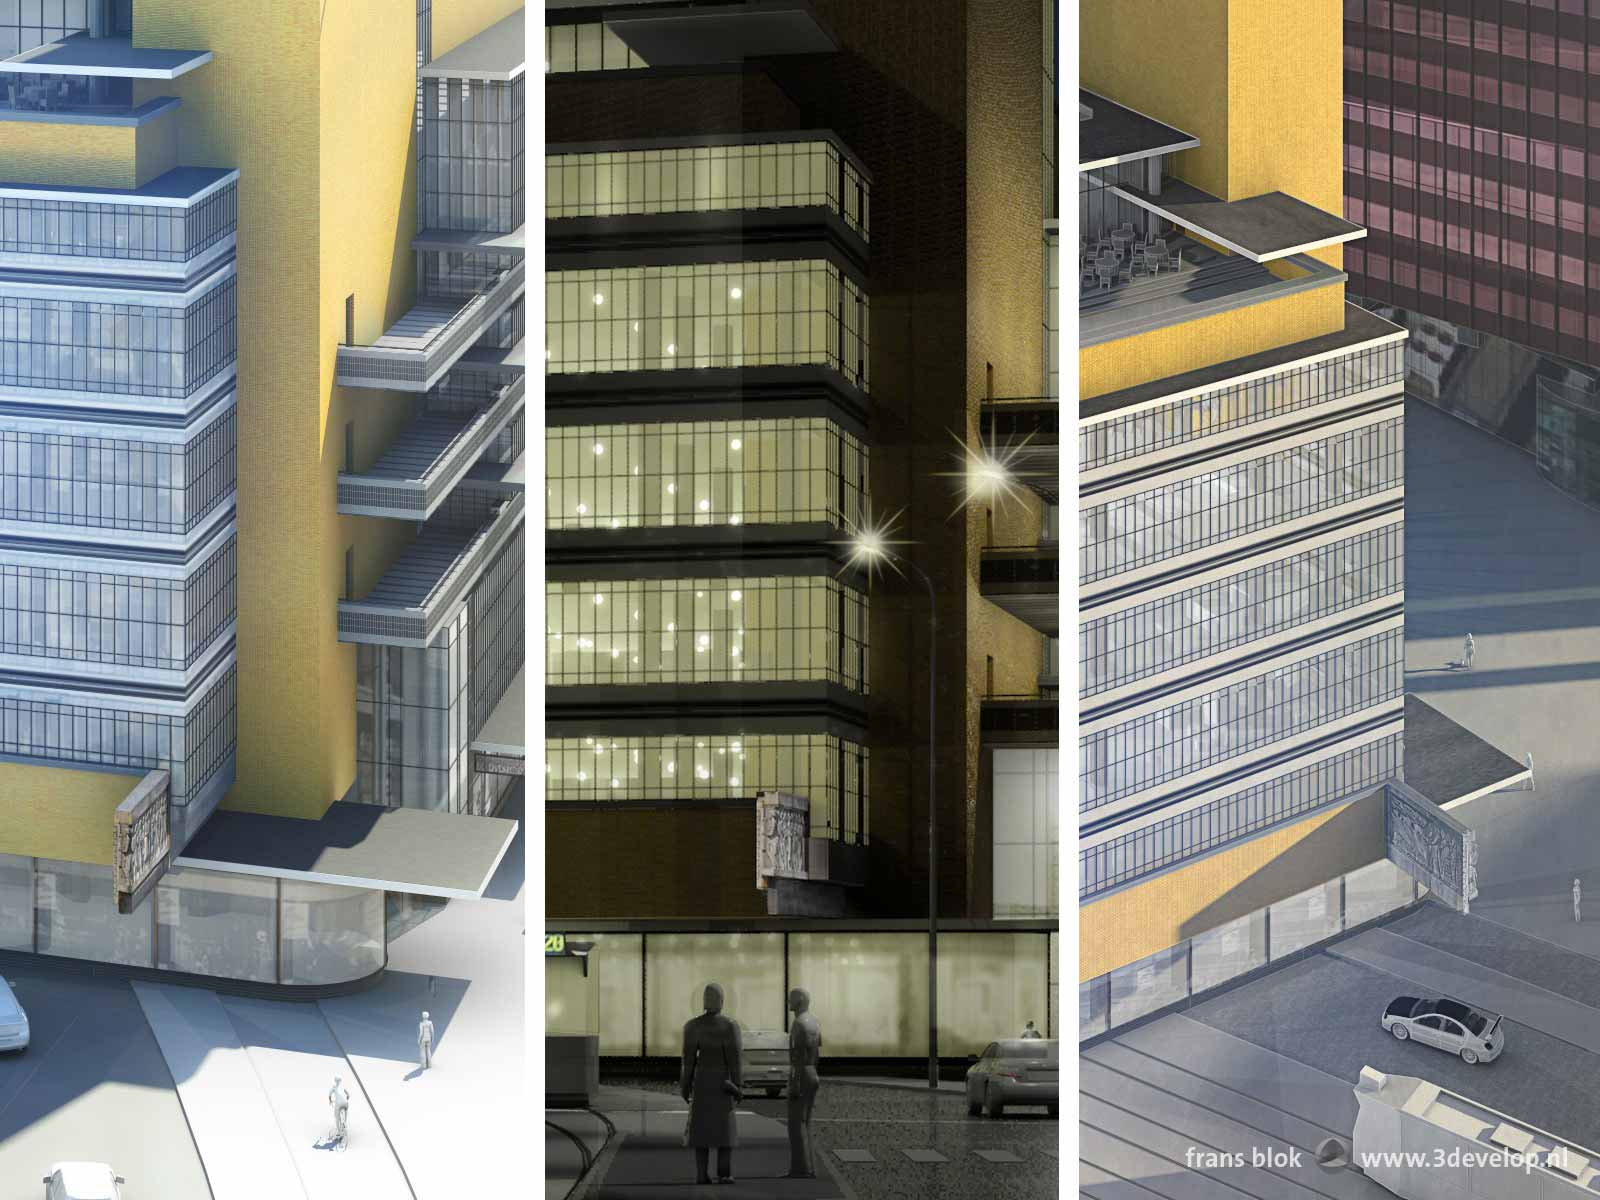 Details from three artist impressions of the old Bijenkorf department store by architect Dudok, showing the location of the famous face sculpture